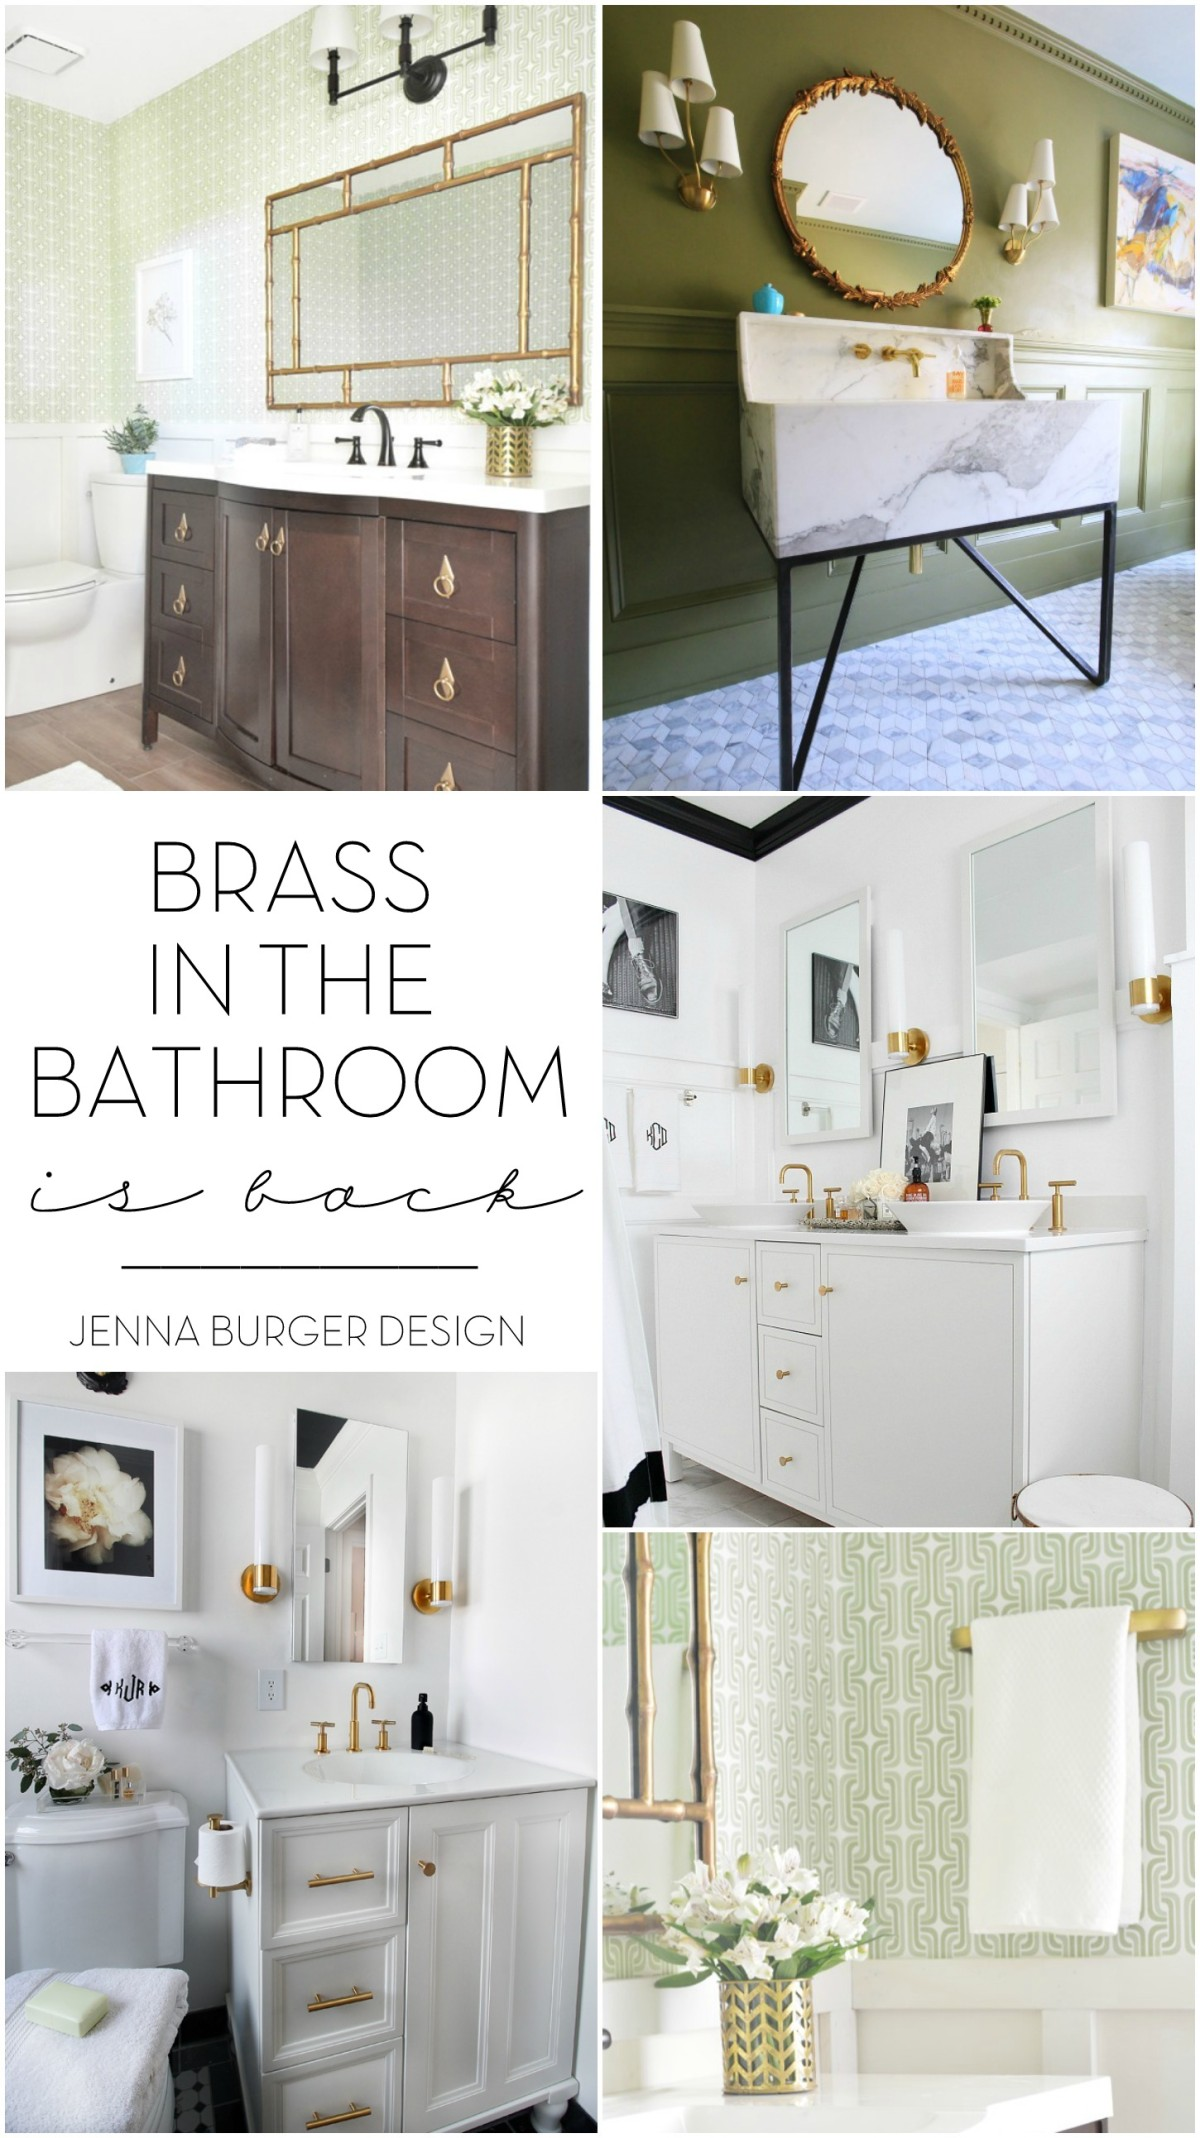 Amazing Brass In The Bathroom Is BACK! From Vintage To Modern, Brass Has Been Given